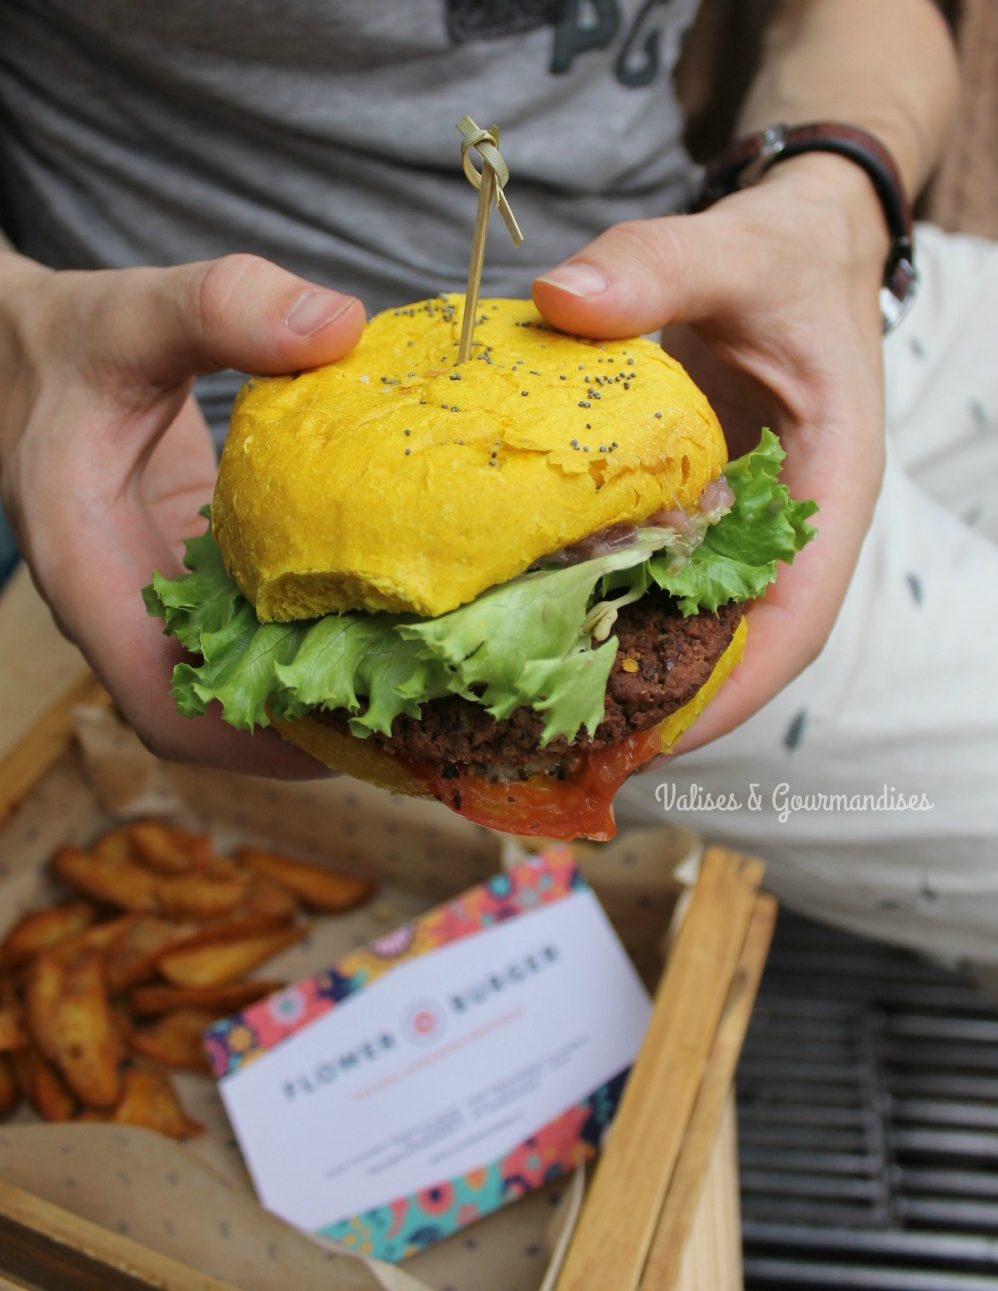 Delicious vegan burgers in Milan, Italy